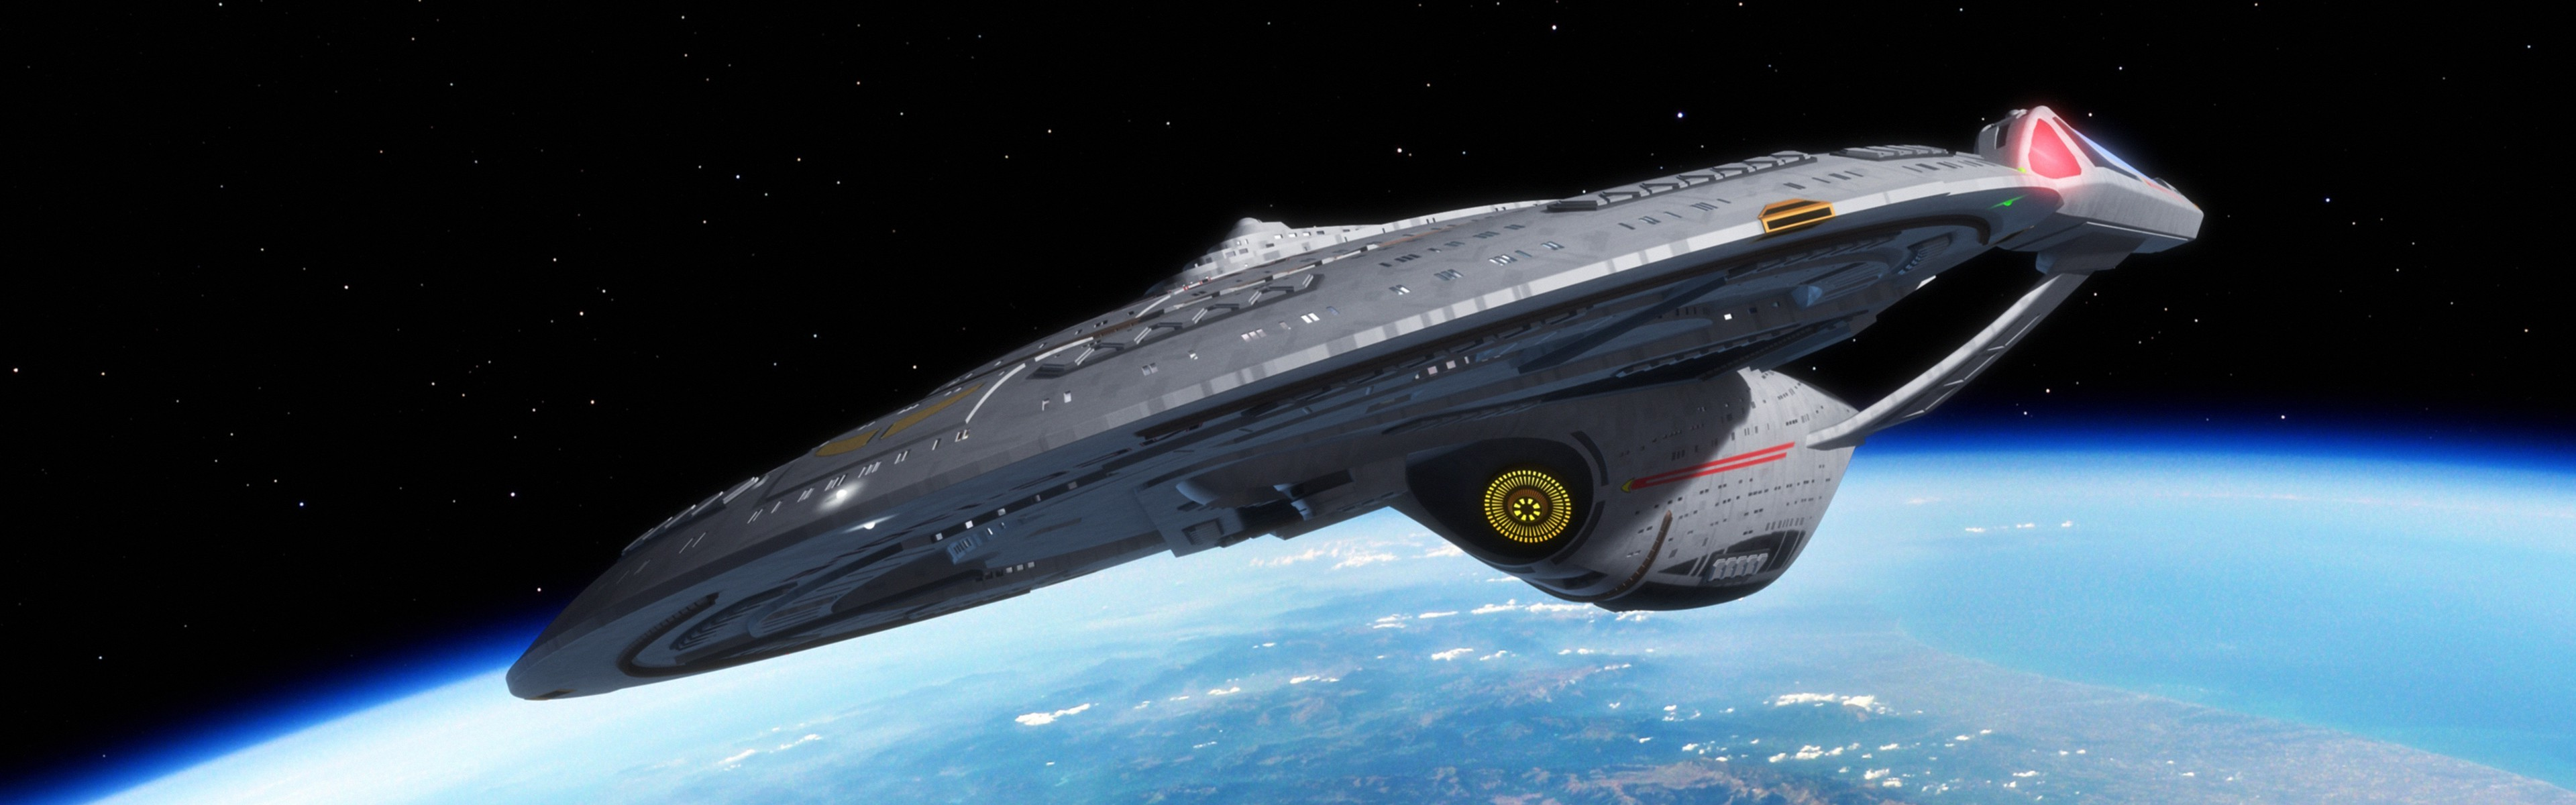 Star Trek USS Enterprise spaceship Space Multiple Display 3840x1200